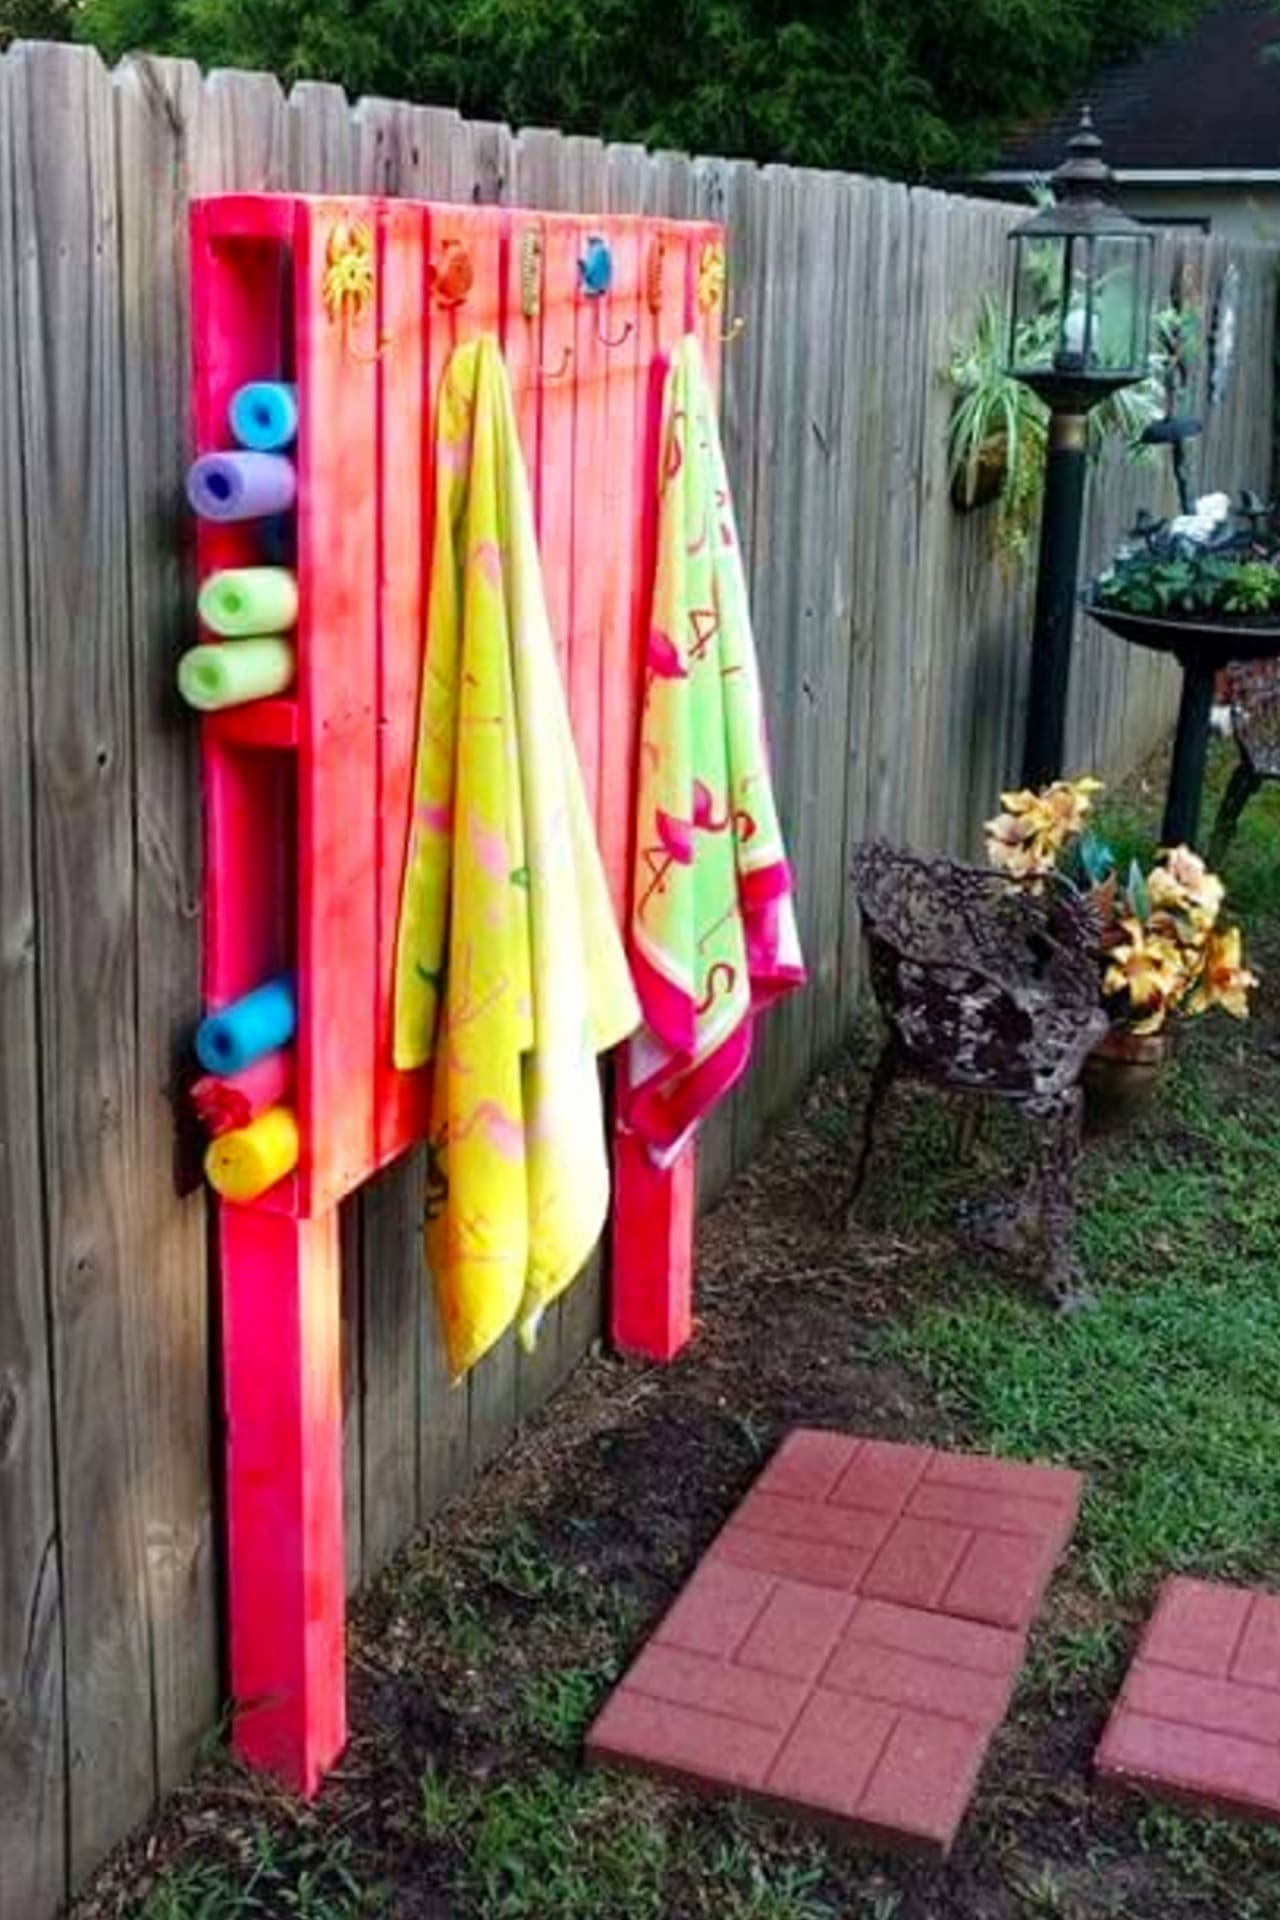 Pallet Projects - Easy DIY outdoor pallet furniture and pallet projects to make or sell - VERY clever pallet projects!  Pallet fence outdoor organizer for pool toys and towels